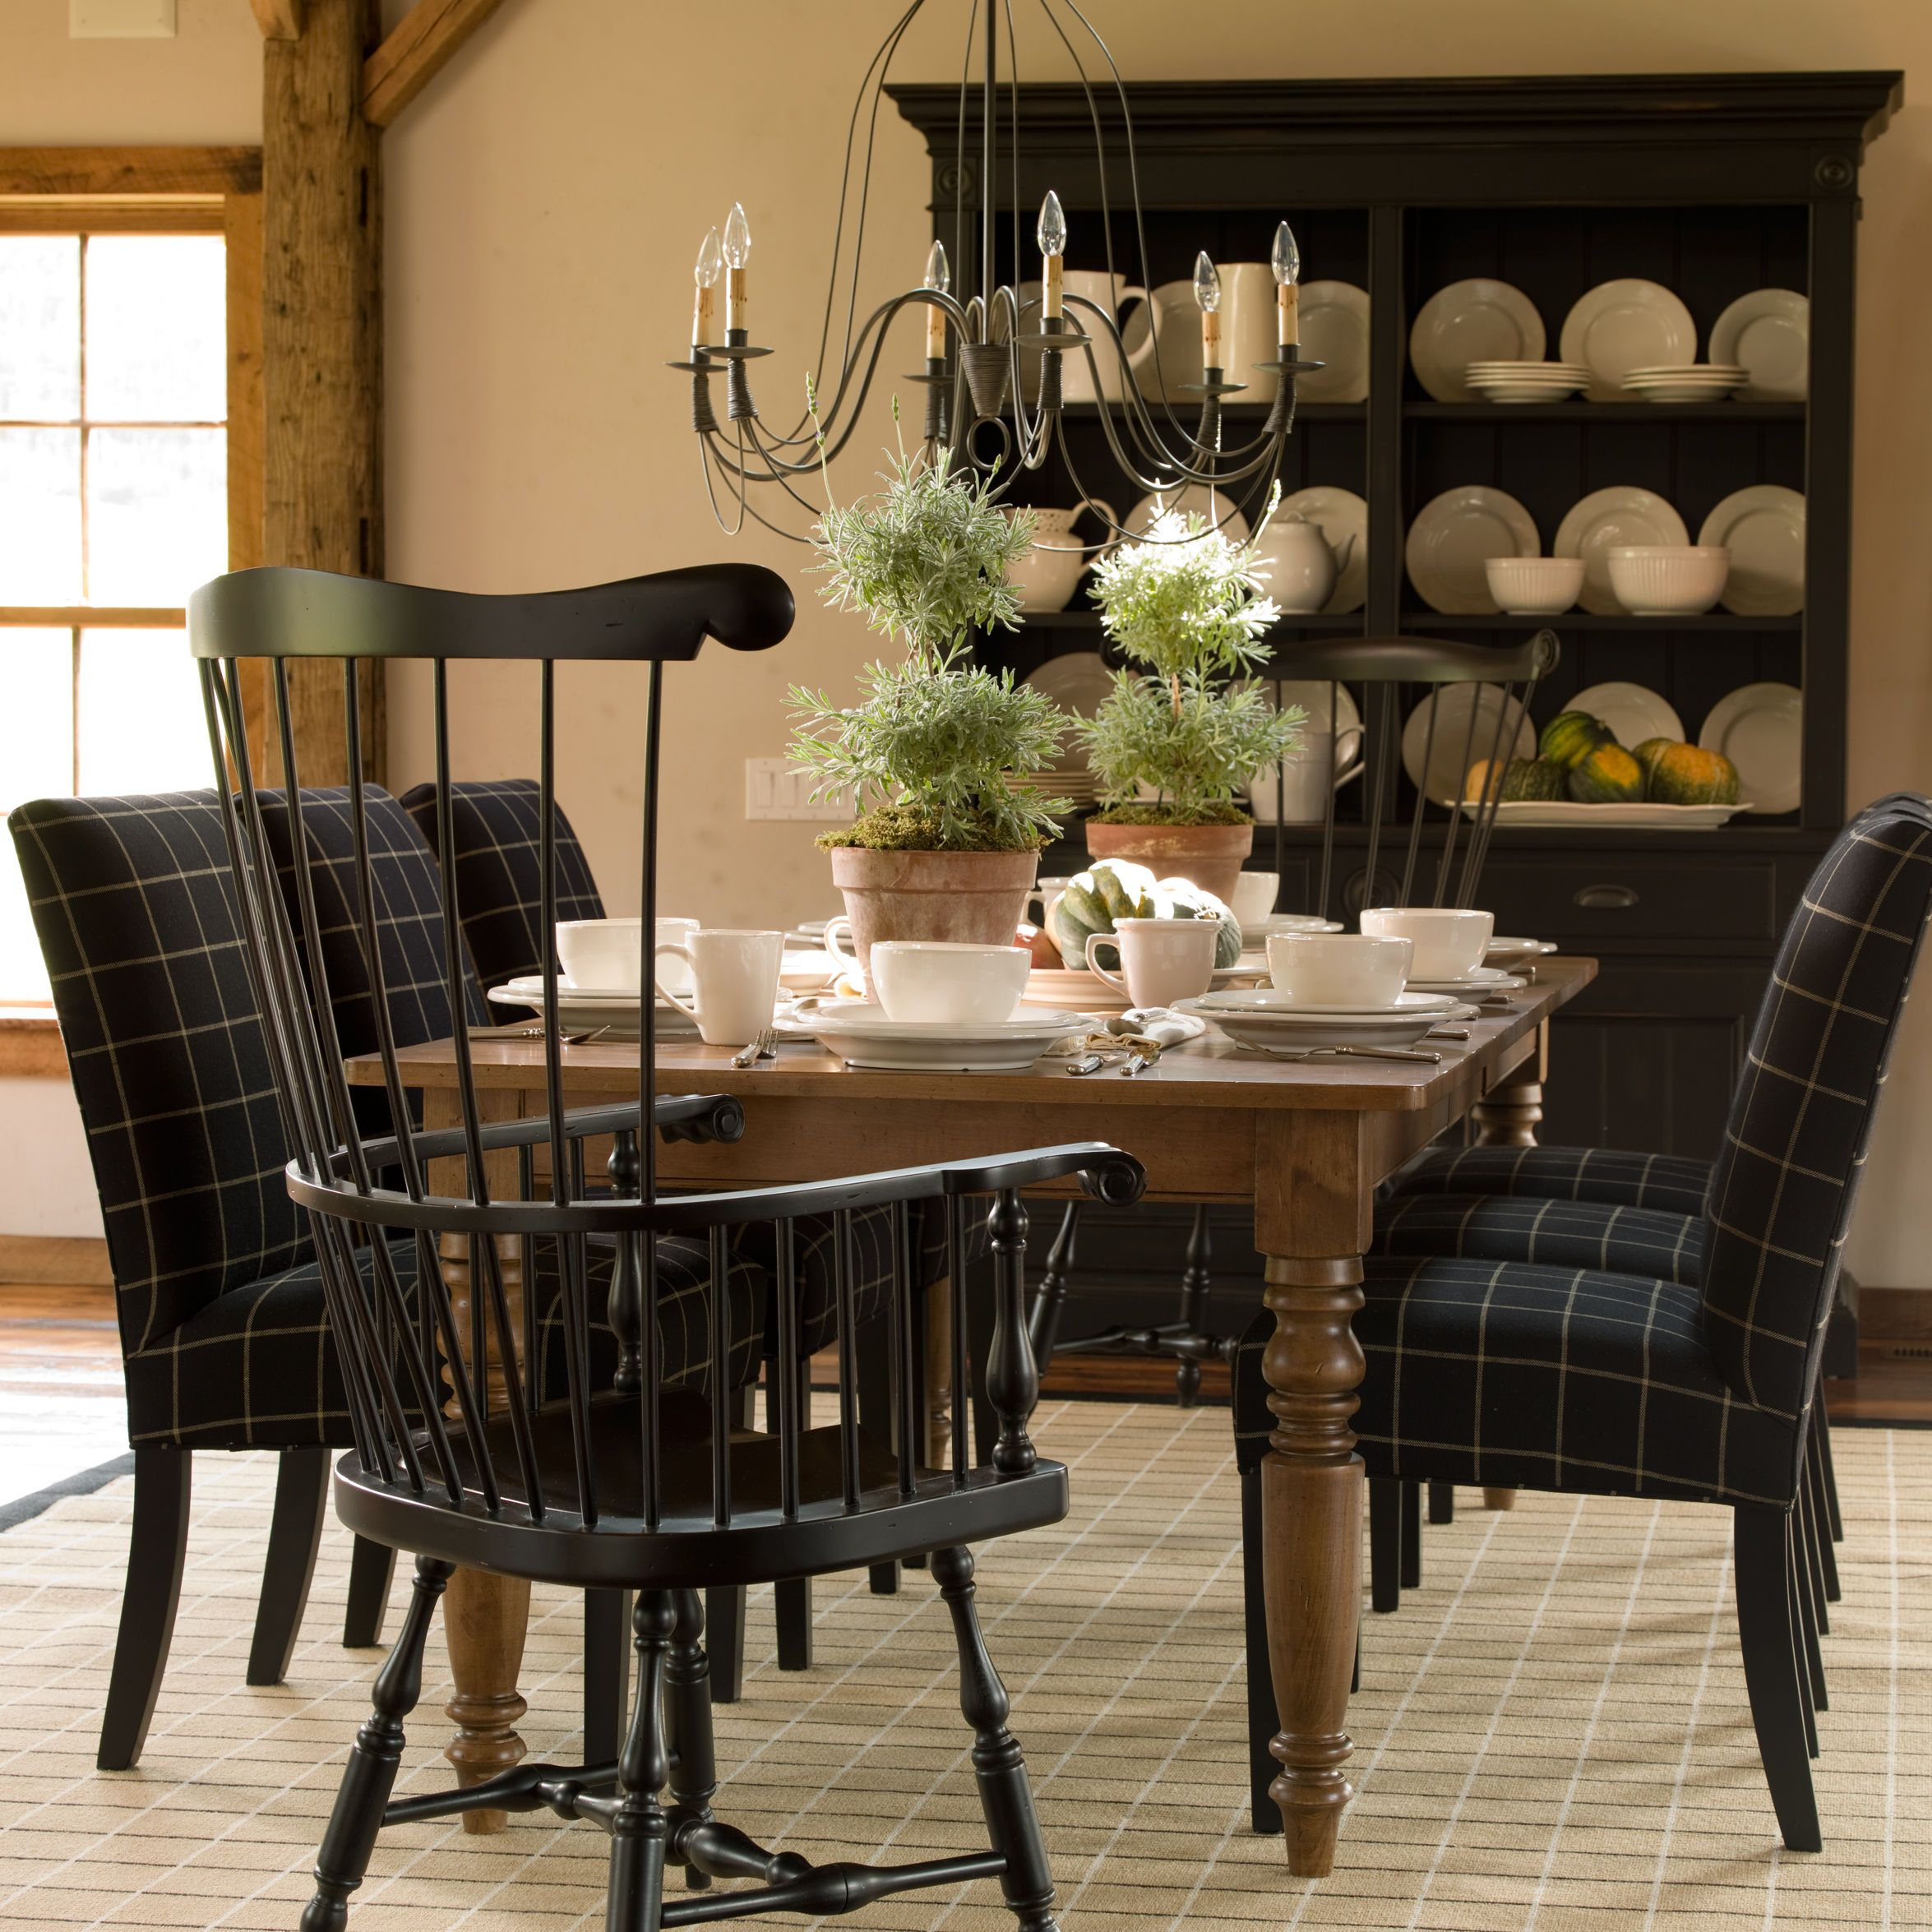 Burton Armchair  Ethan Allen Uslove The End Chair Dining Amusing End Chairs For Dining Room Inspiration Design